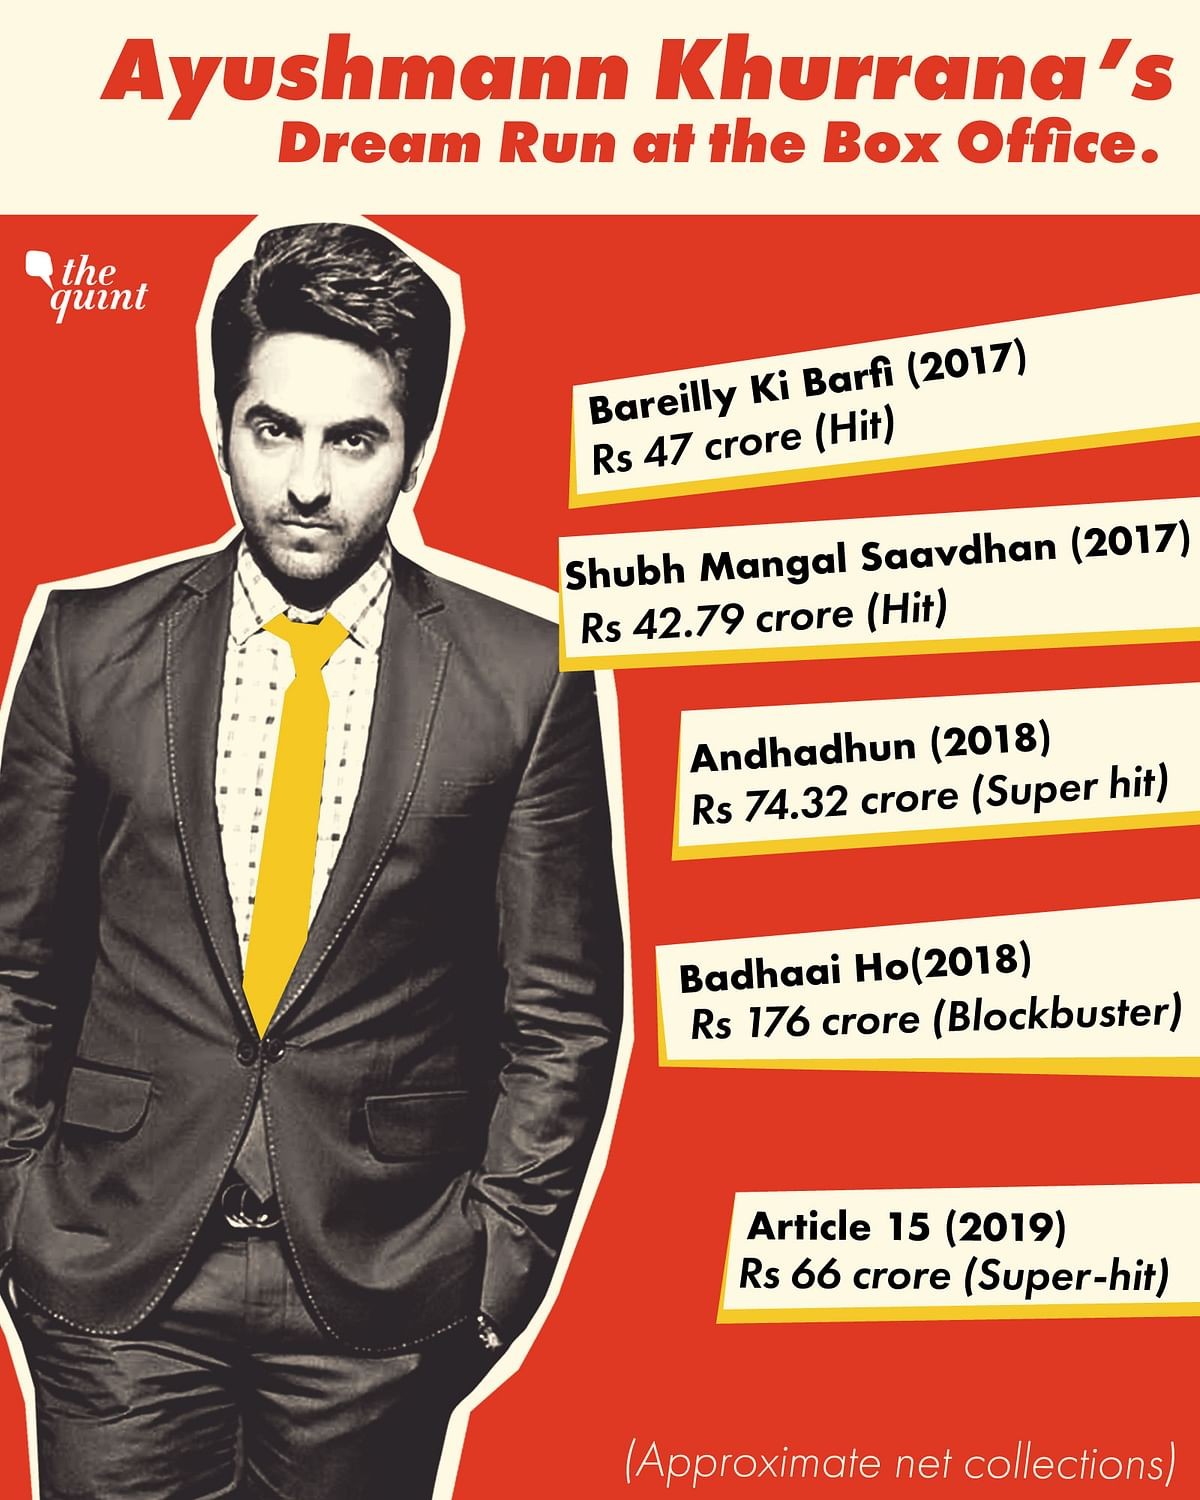 Ayushmann Khurrana has delivered five back-to-back hits at the box office.